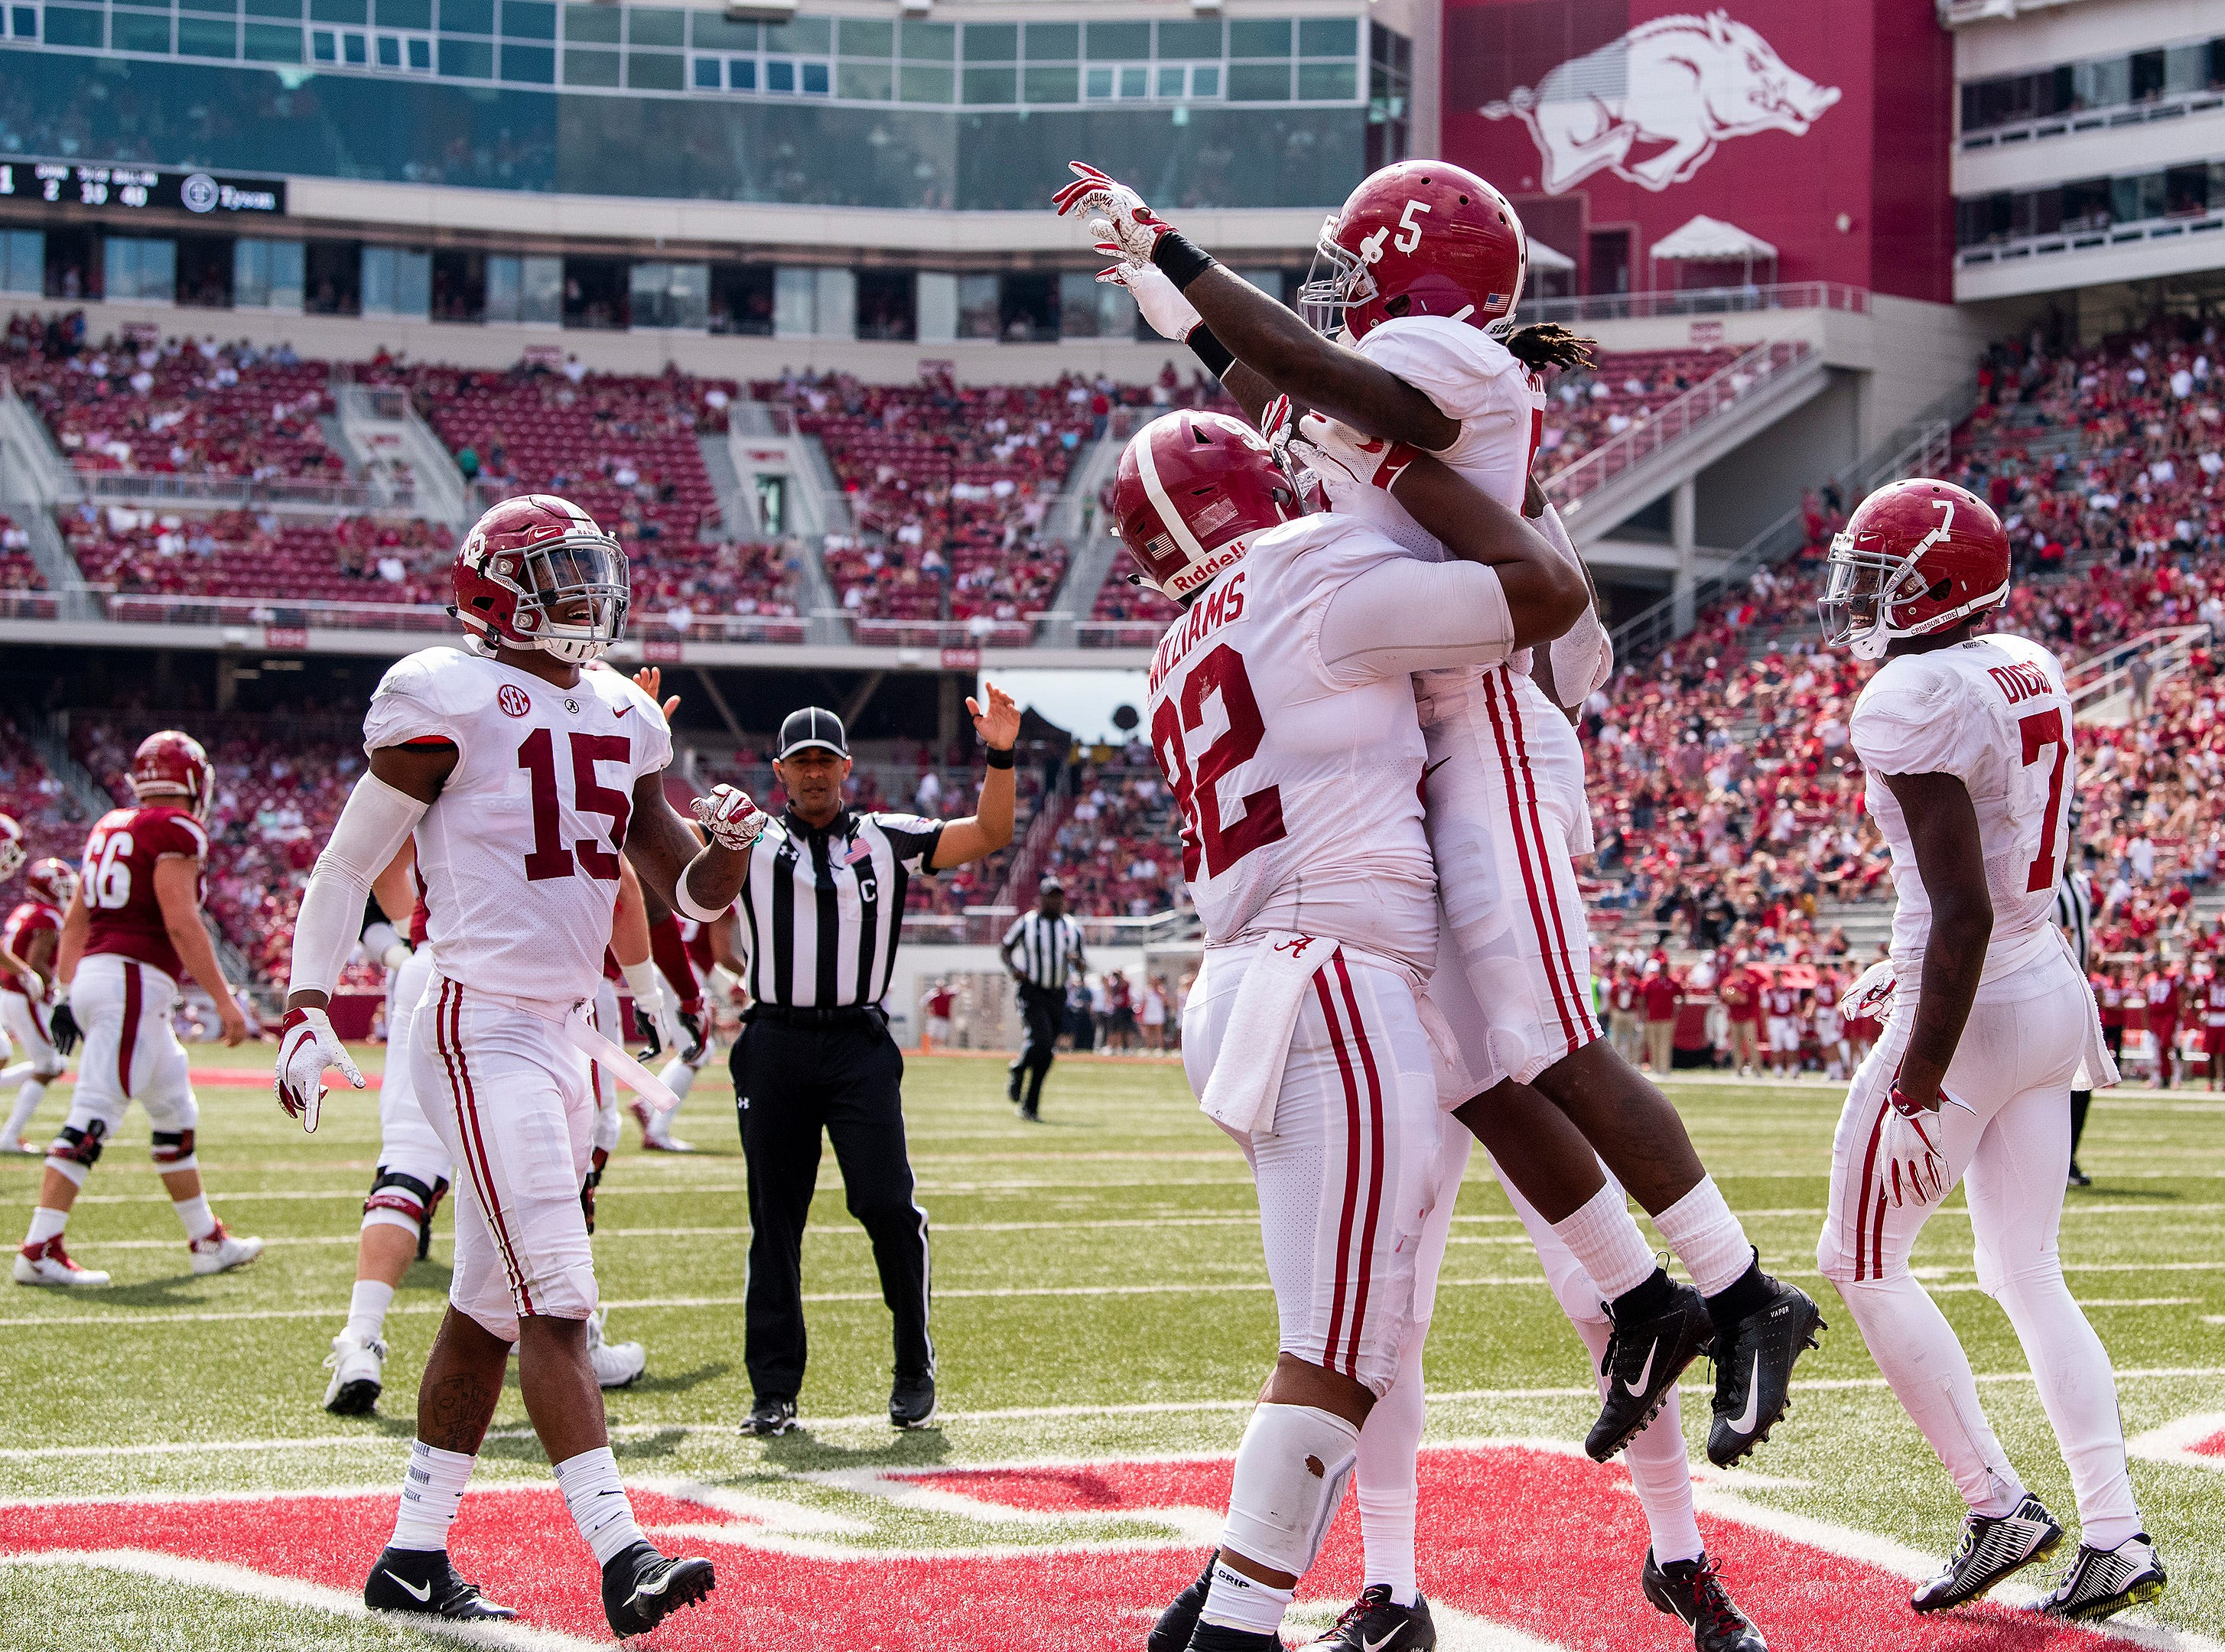 Alabama defensive lineman Quinnen Williams (92) lifts Alabama defensive back Shyheim Carter (5) after Carters interception return for touchdown against Arkansas during second half action in Fayetteville, Ark., on Saturday October 6, 2018.